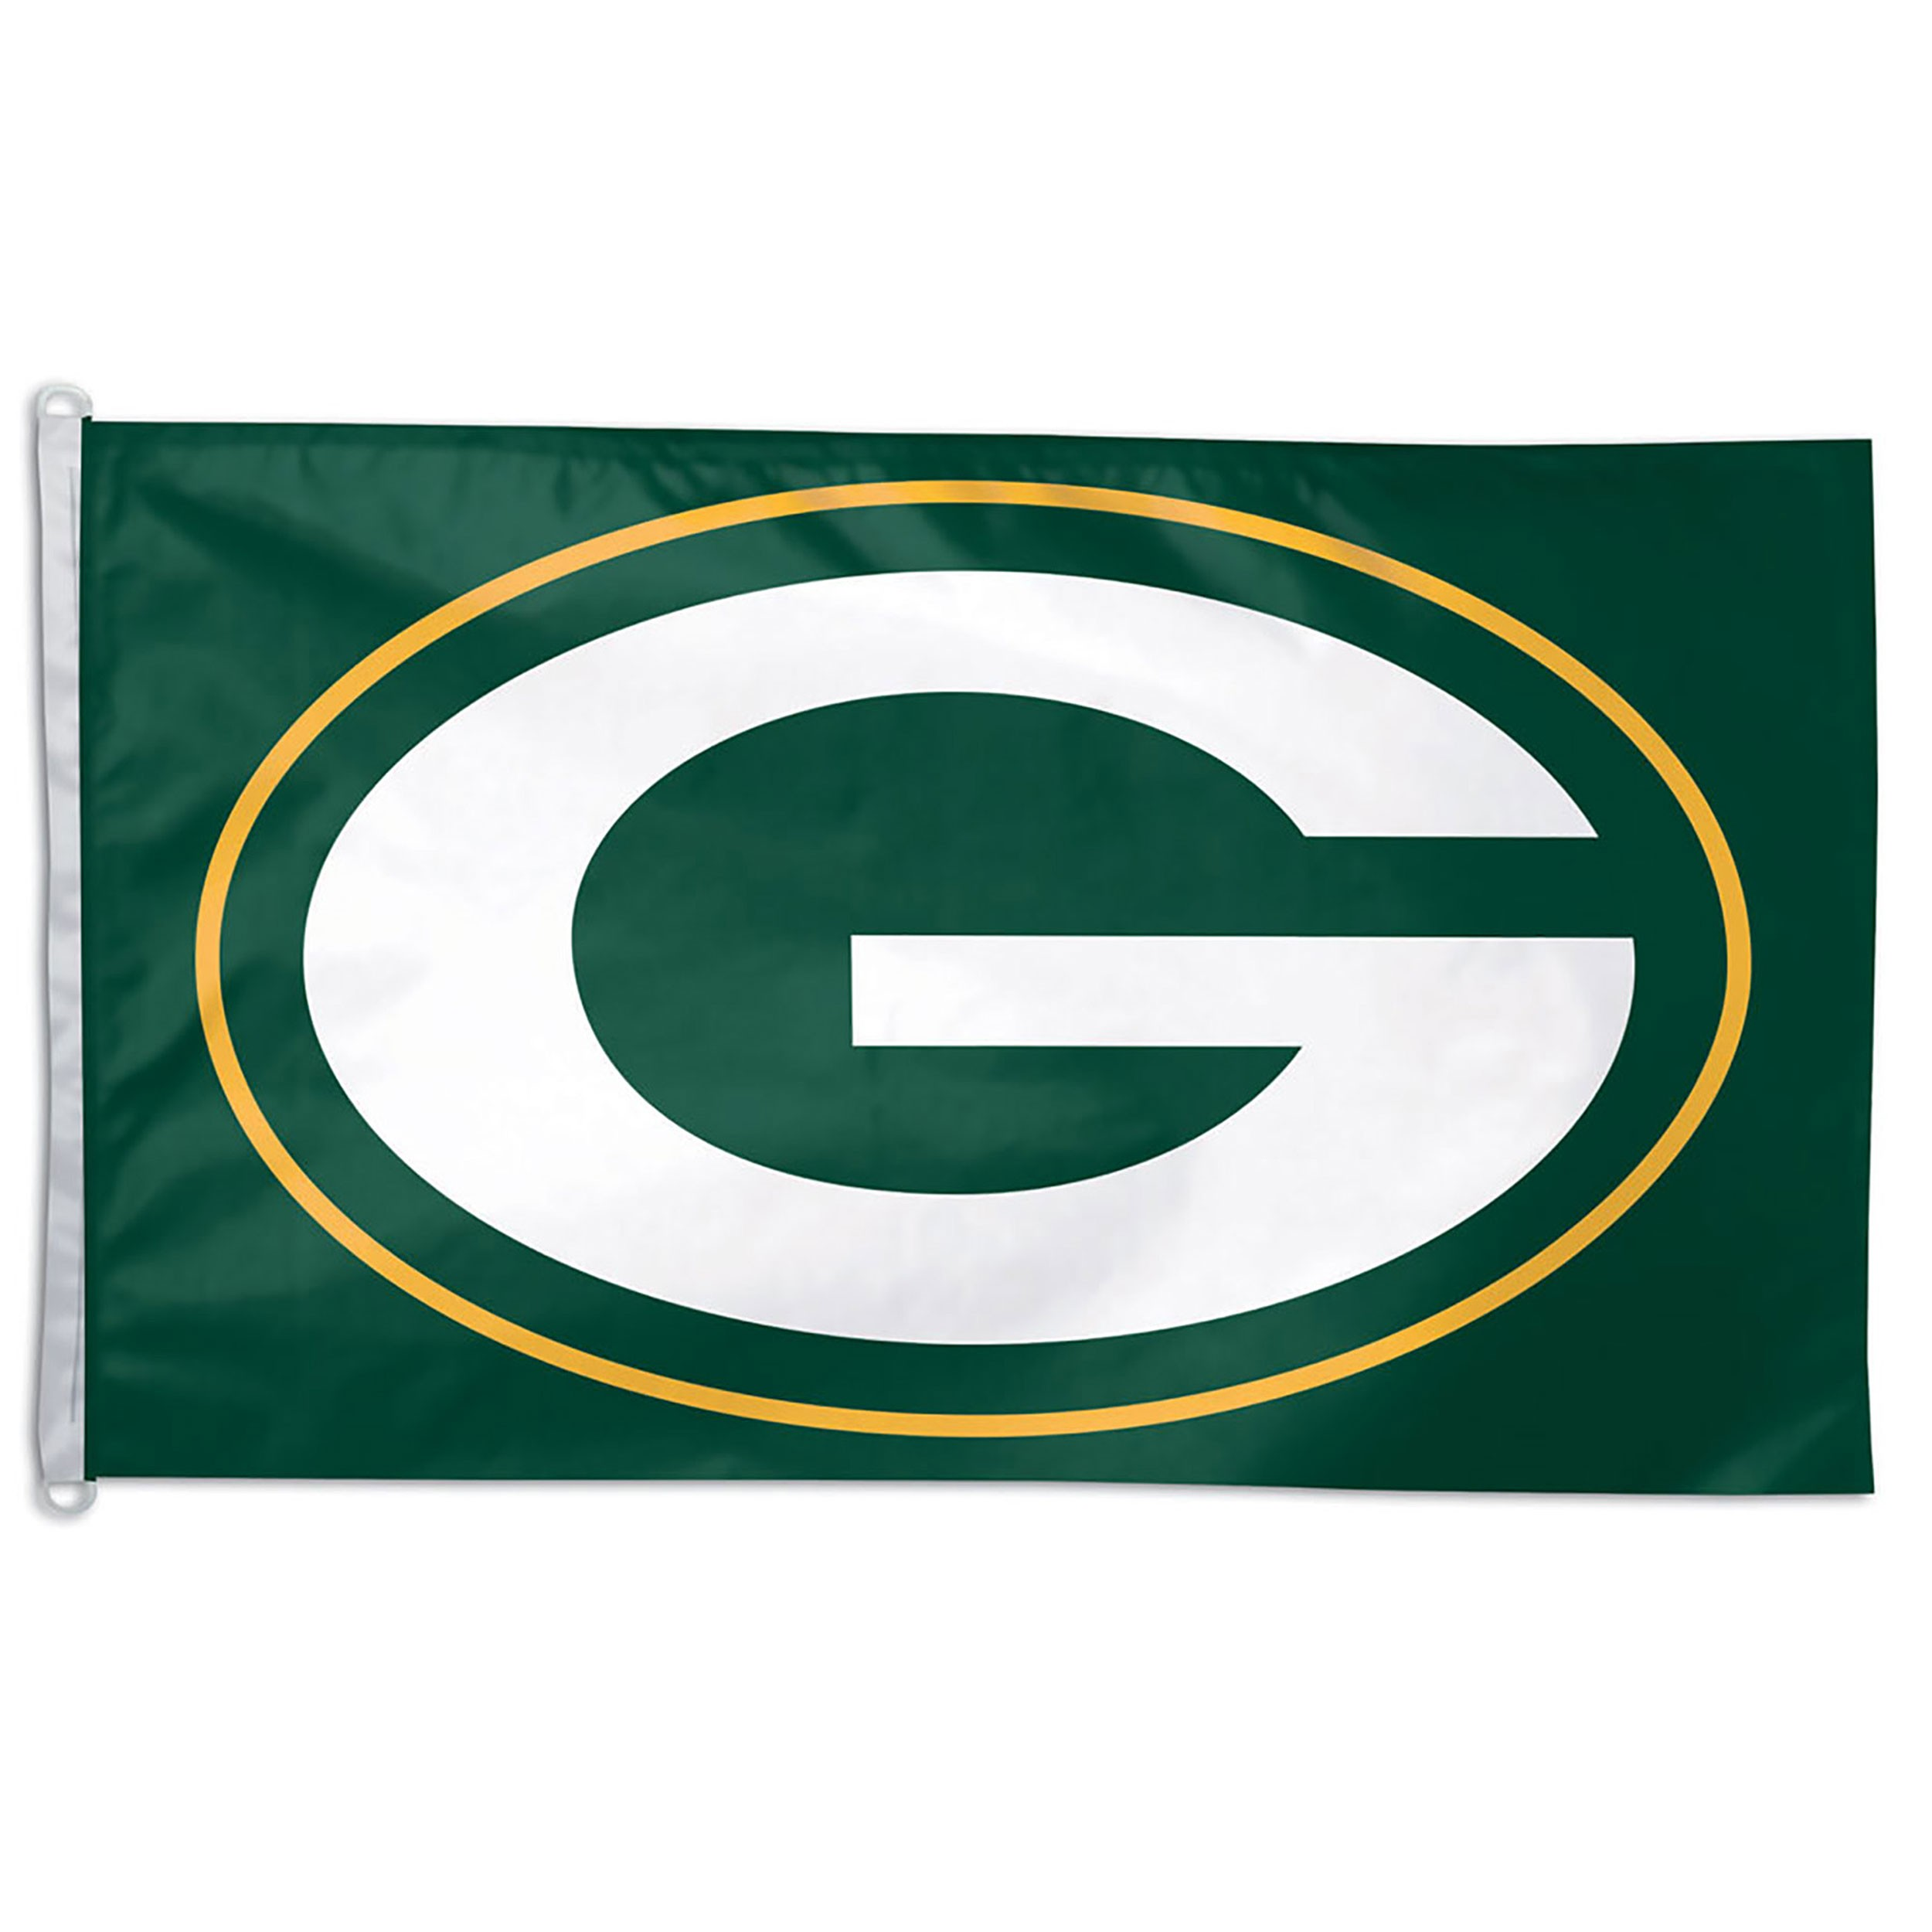 2500x2500 Bay Packers